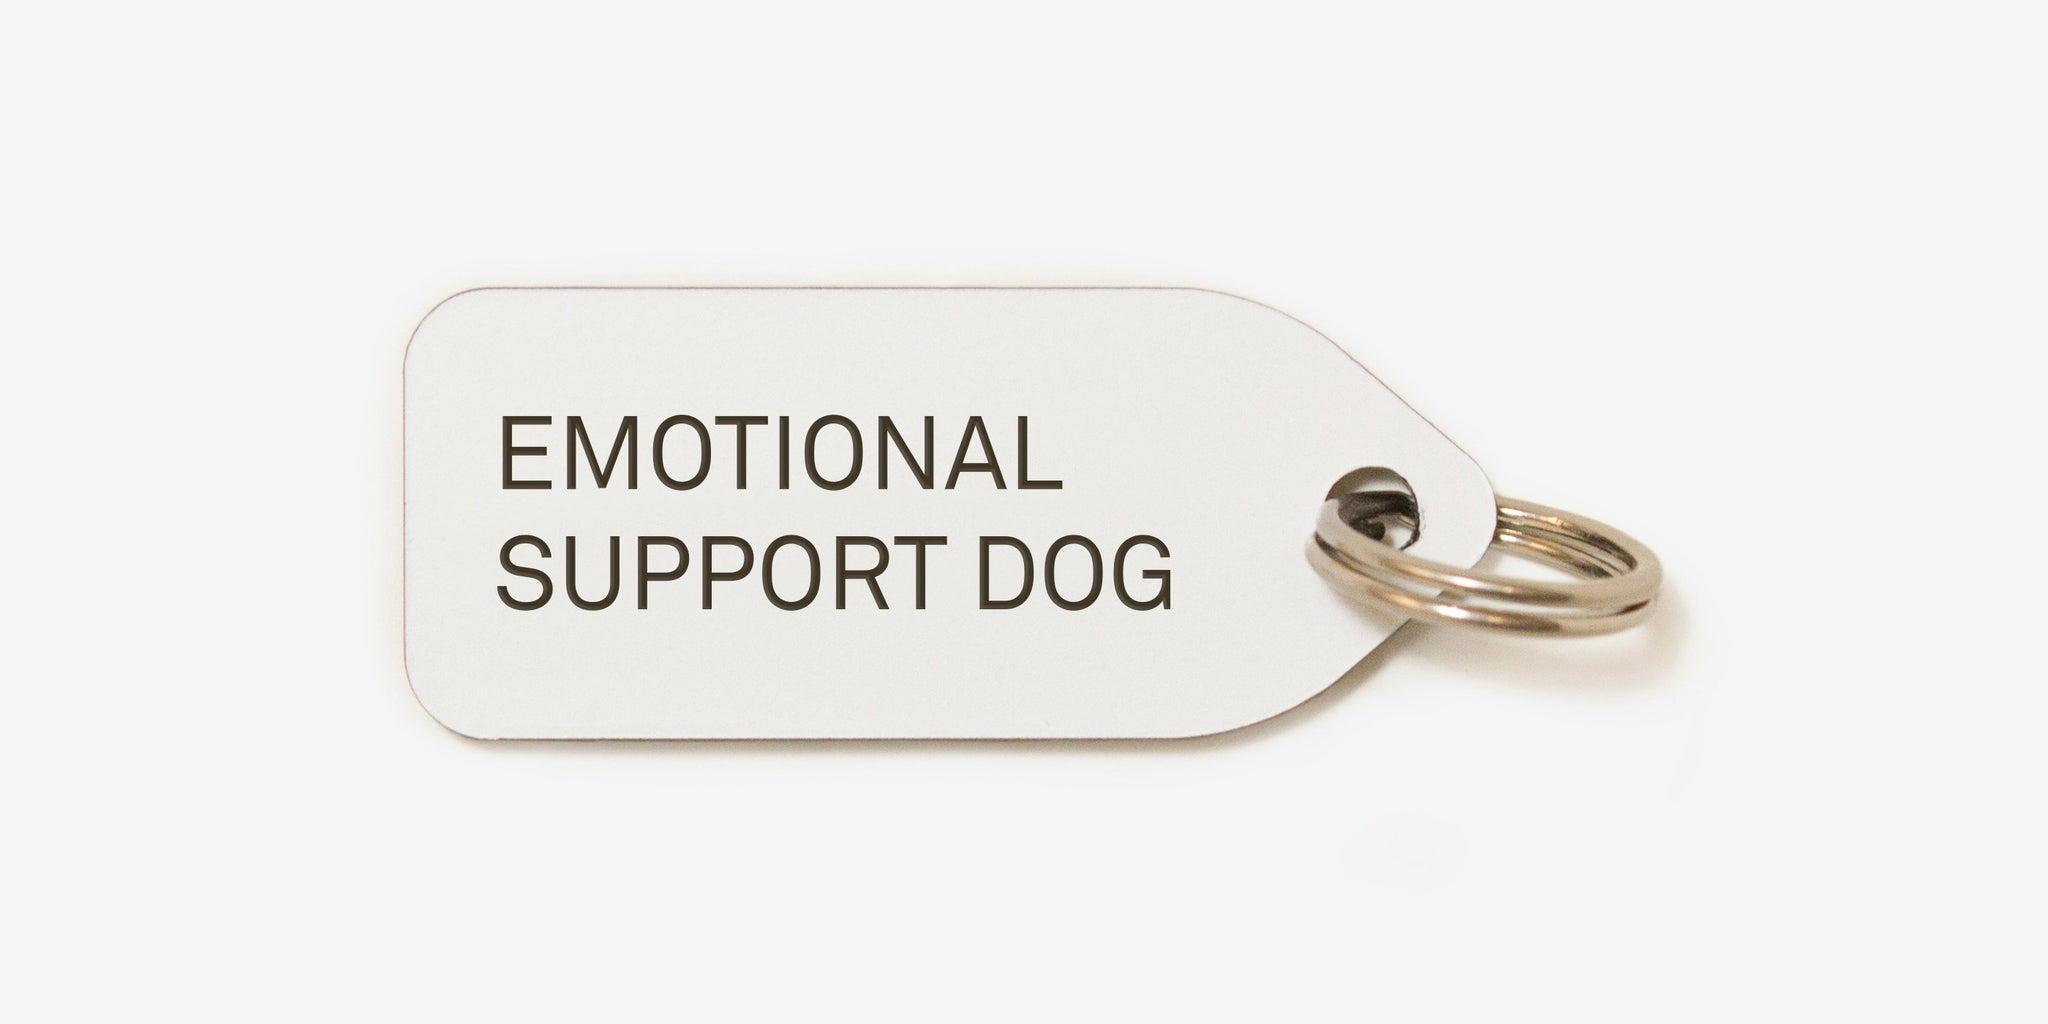 Emotional support dog | dog tag | collar charm | Growlees